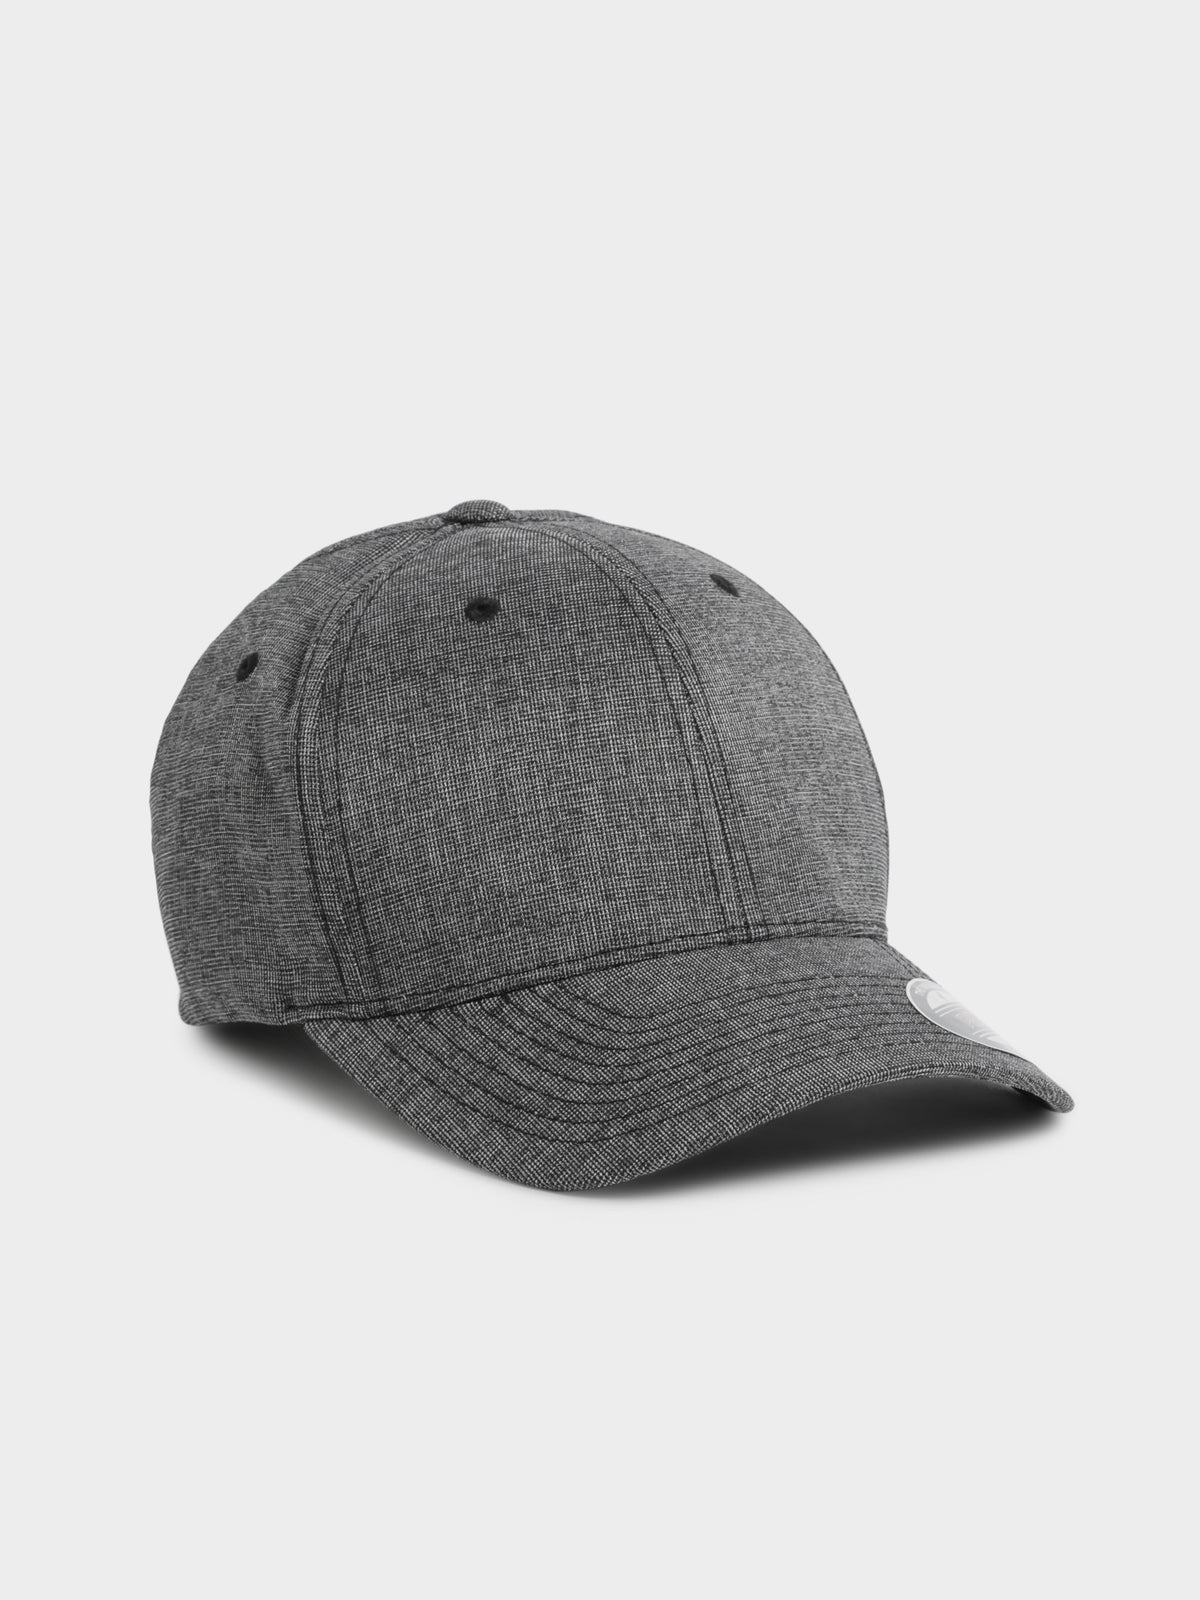 Cool and Dry Chambray Cap in Grey